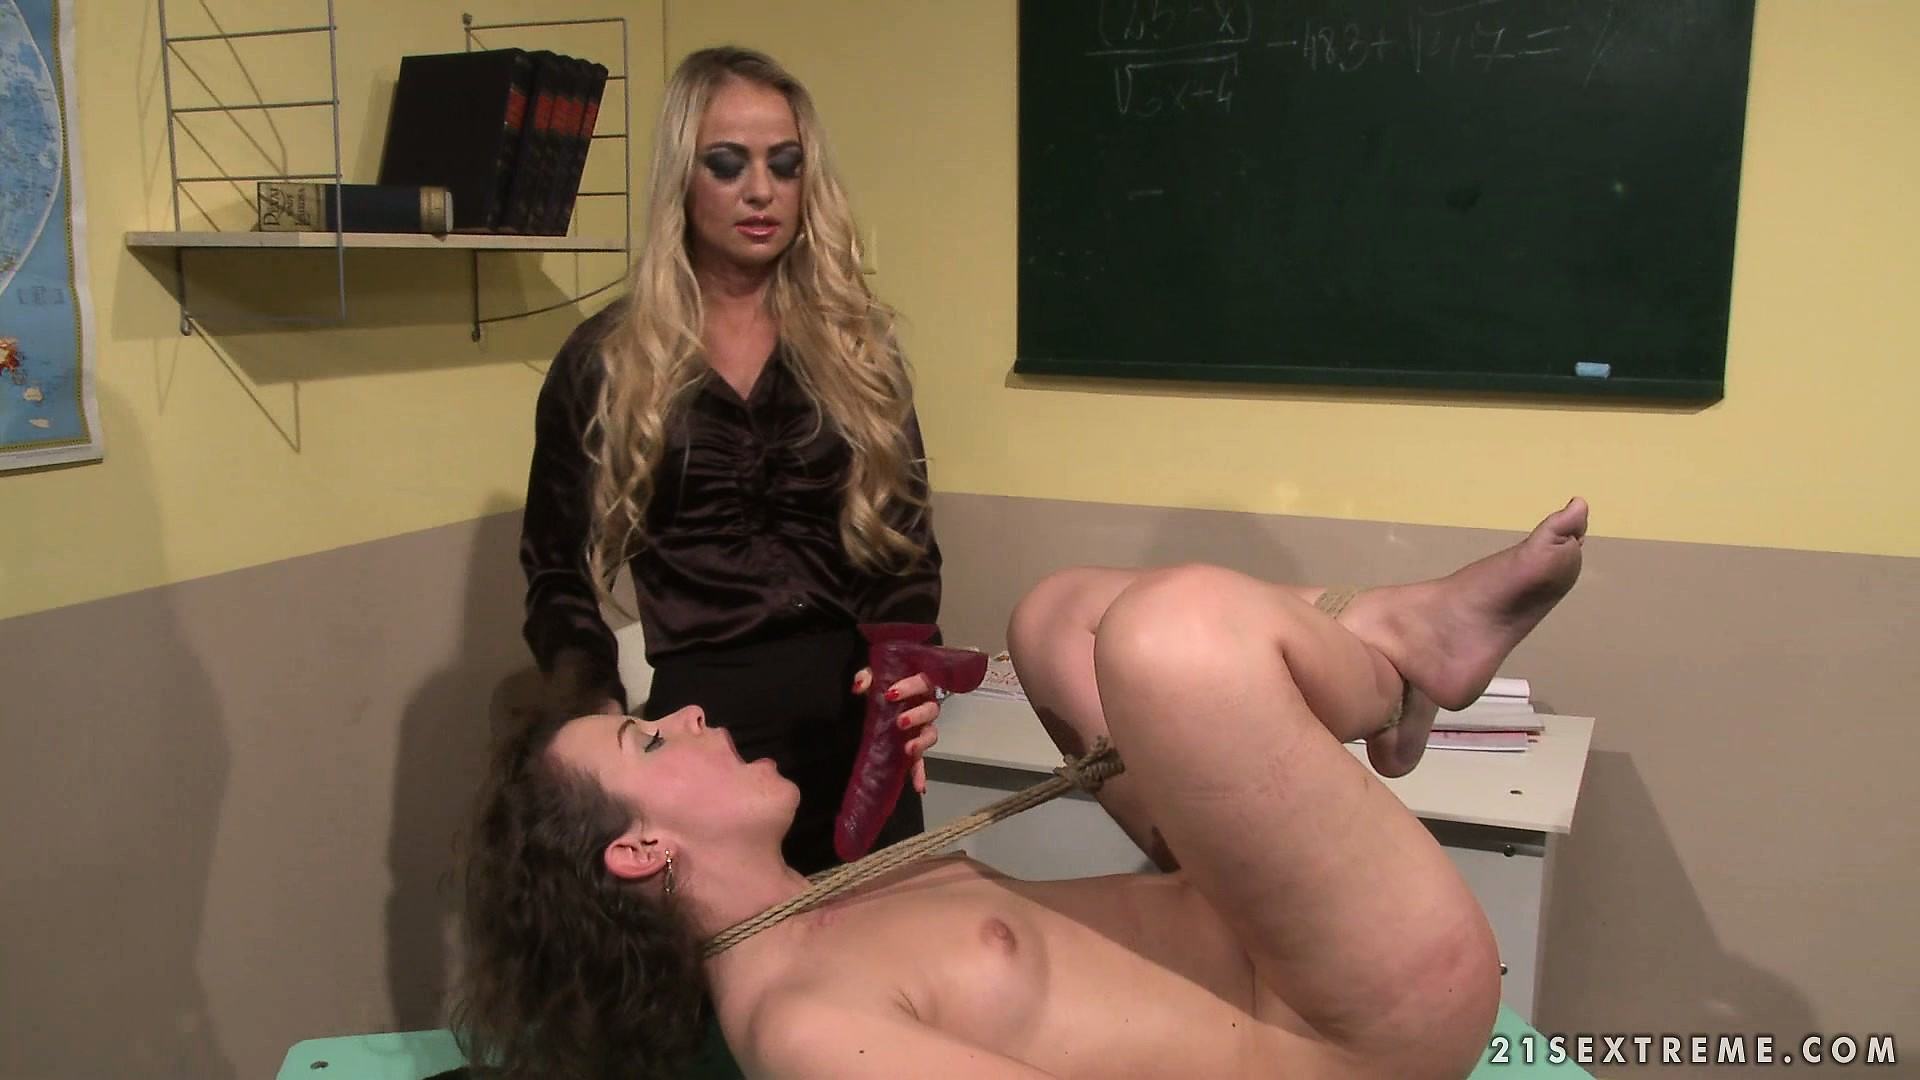 Porno Video of Evil School Teacher Devices Her Own Method For Punishing Her Students